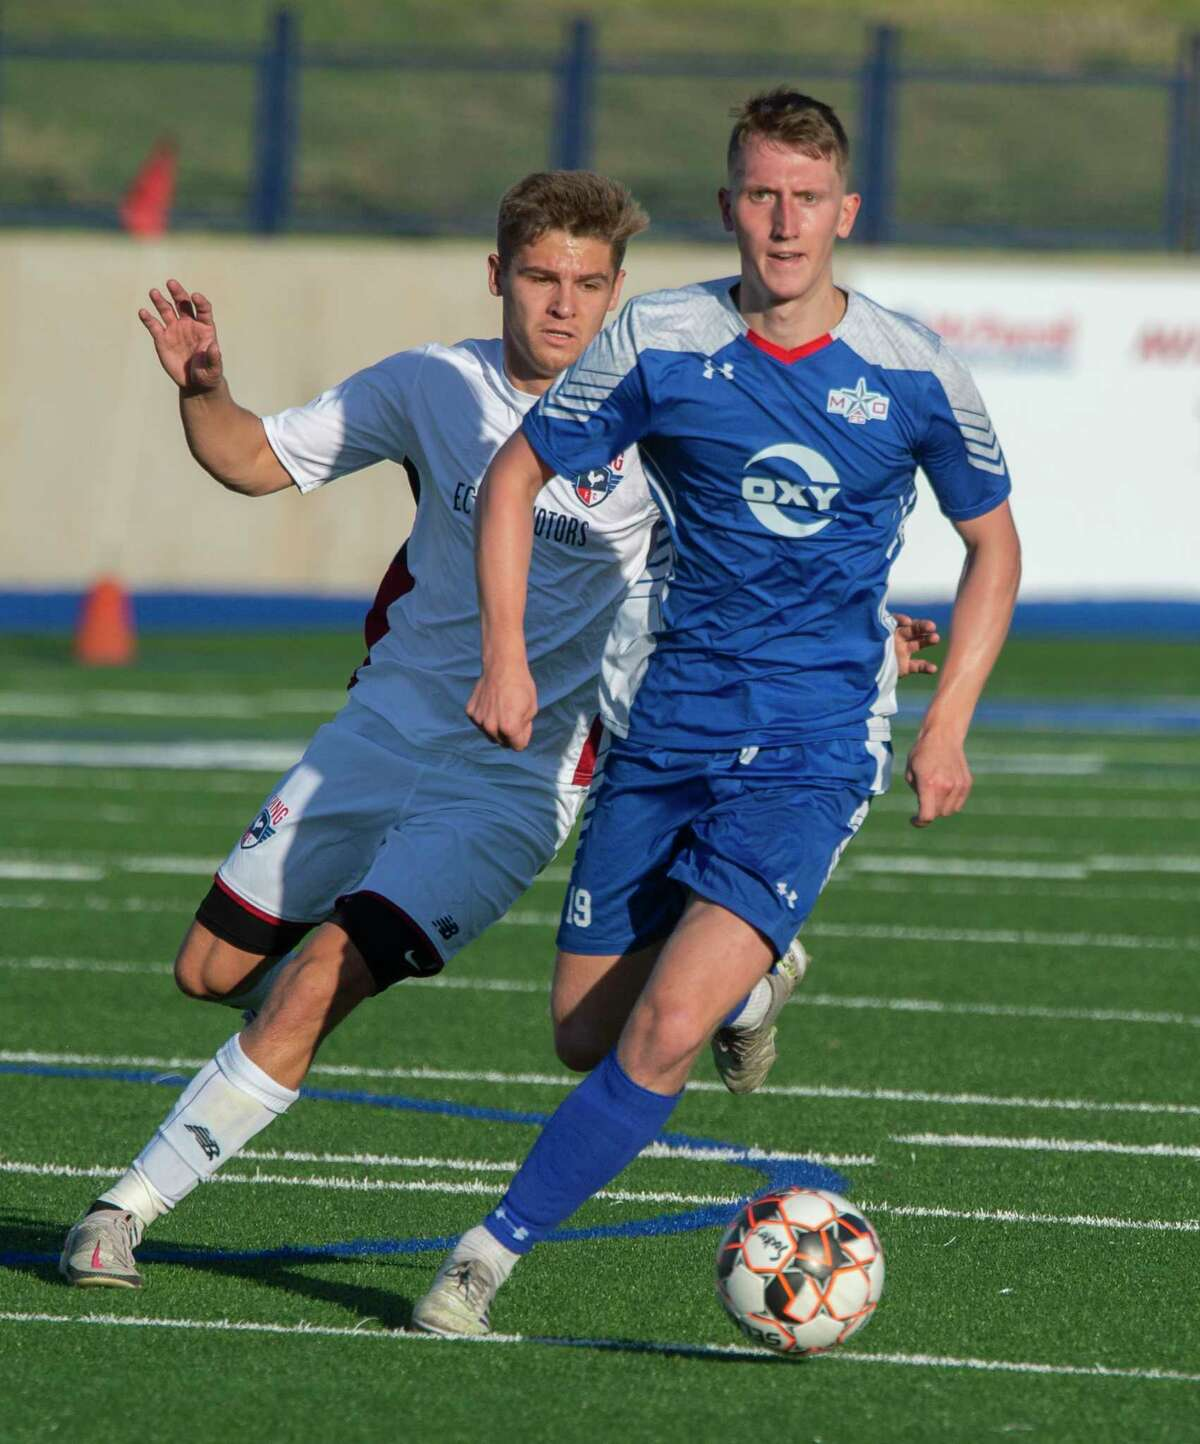 Sockers' Ben Quigley brings the ball upfield as Irving's Joe Conway chases 06/05/2021 at Grande Communications Stadium. Tim Fischer/Reporter-Telegram